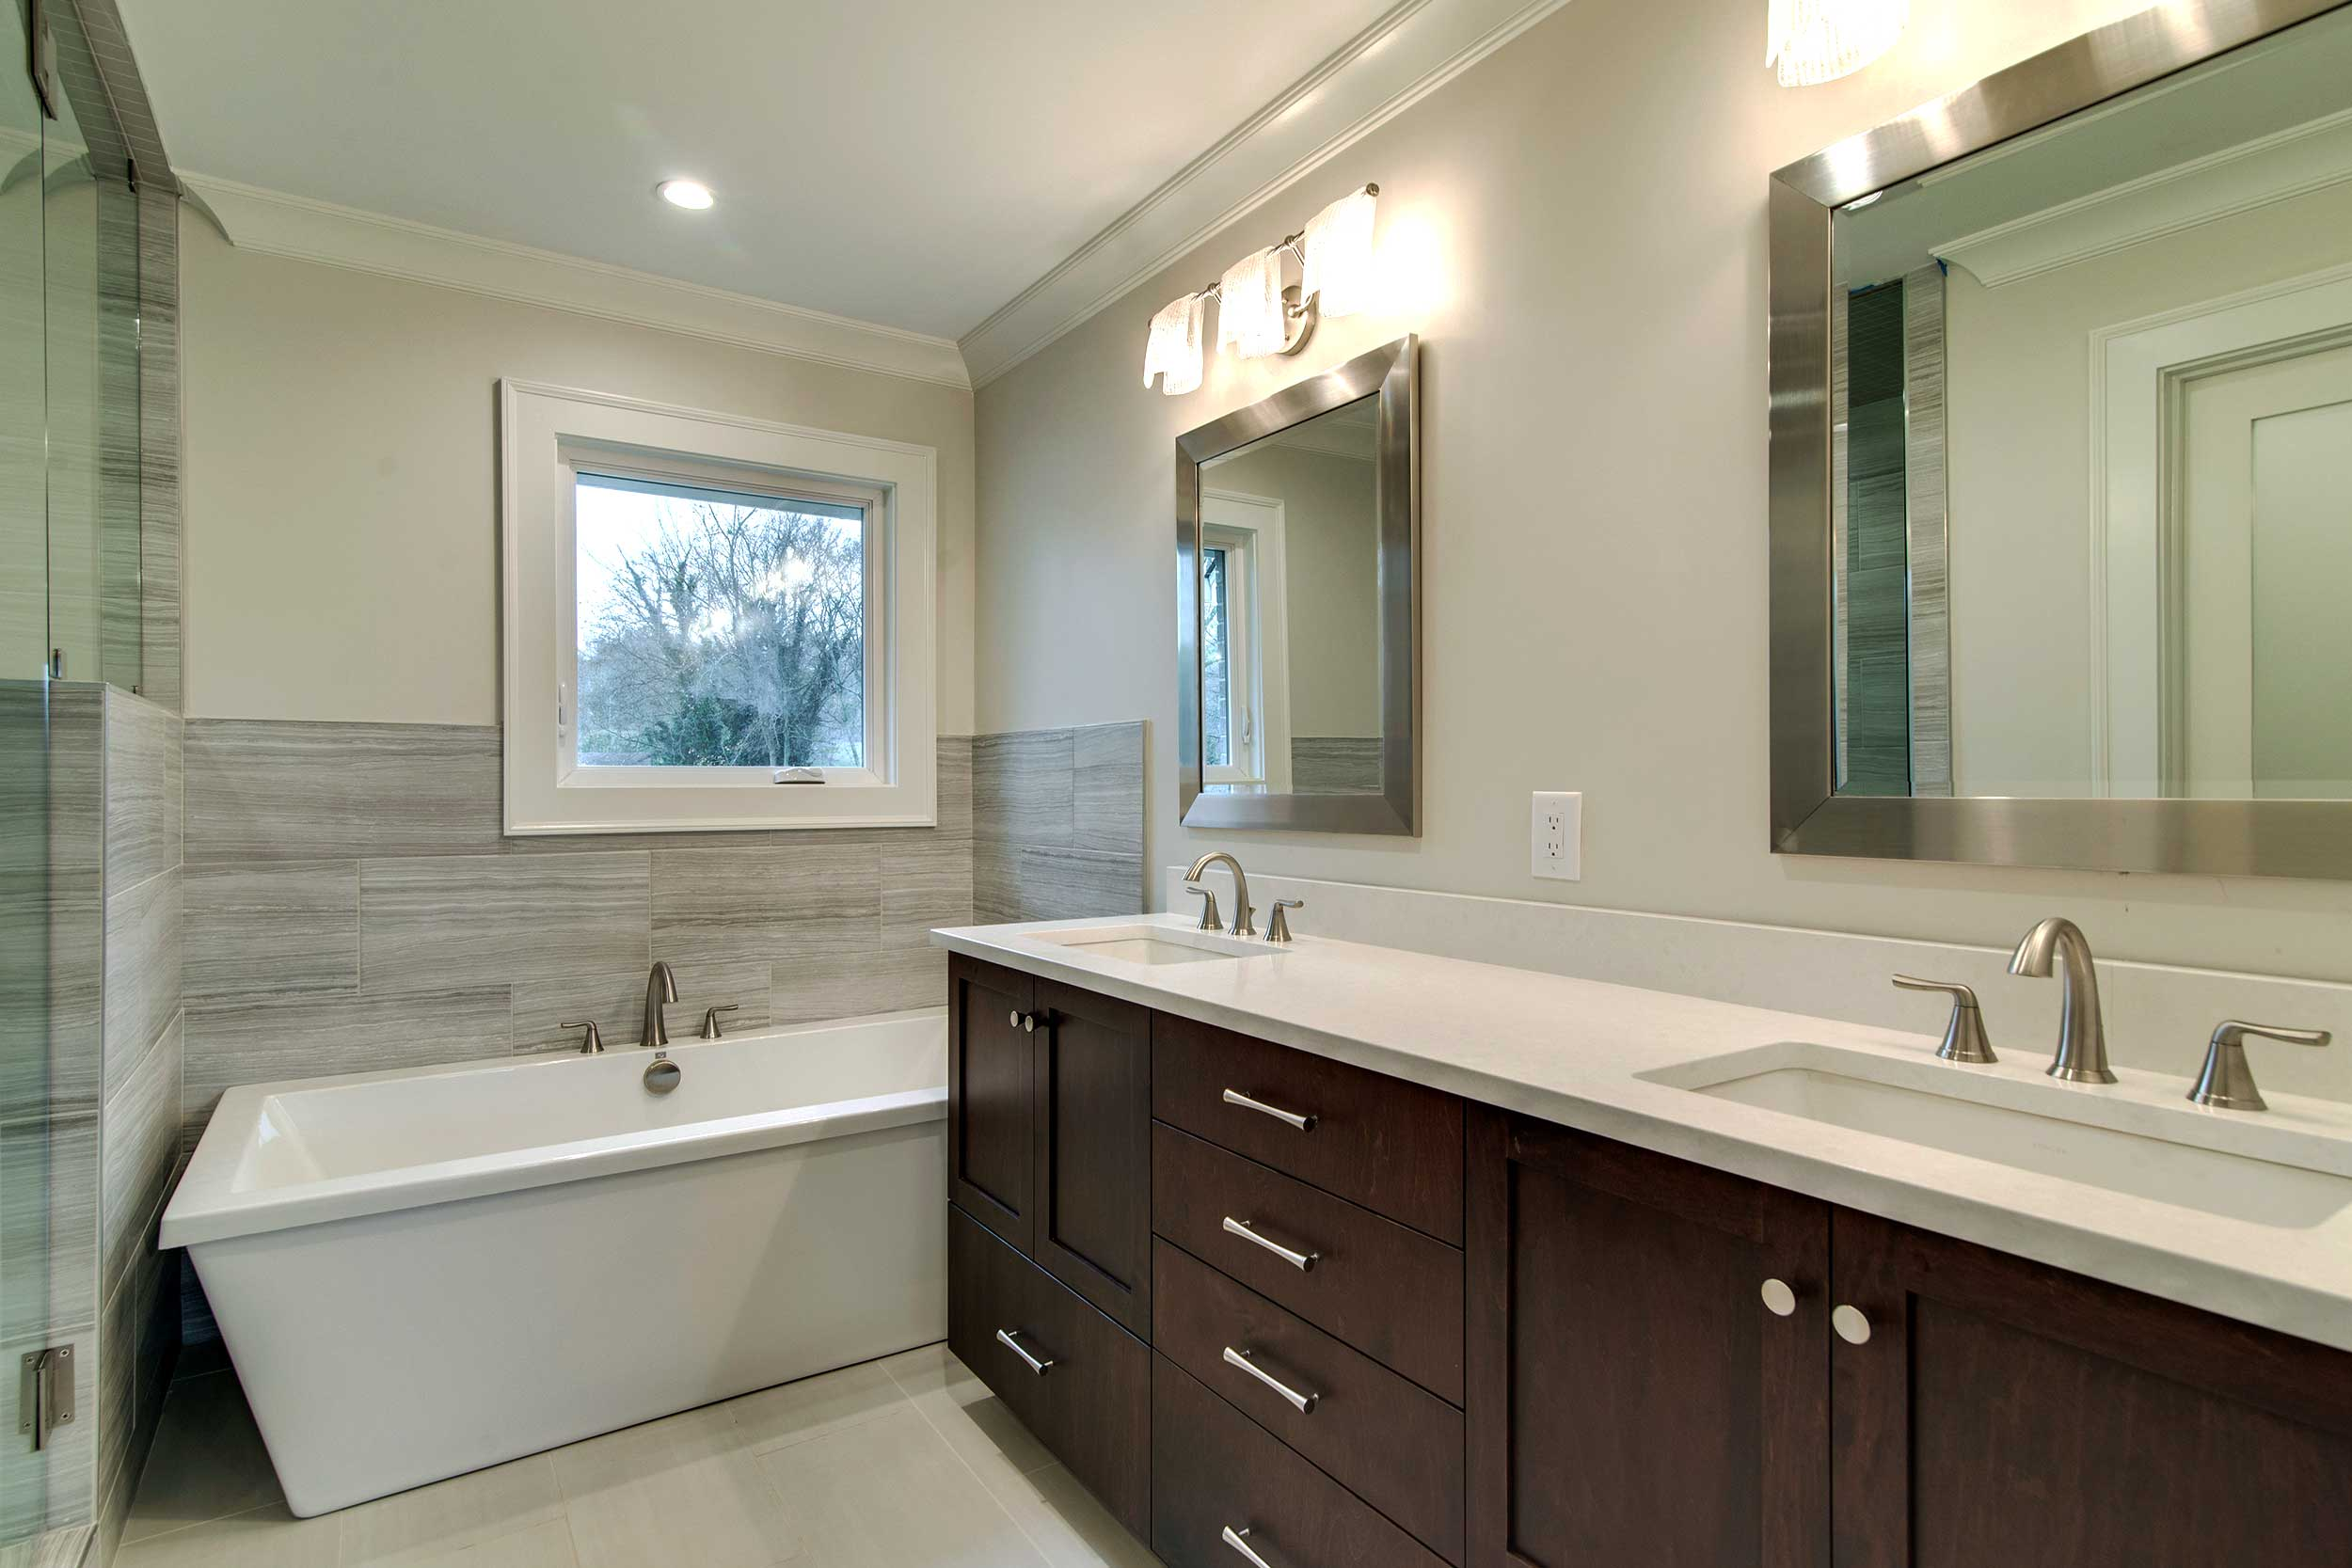 pebble_gray_tile_walnut_cabinet_soaking_tub_bathroom.jpg